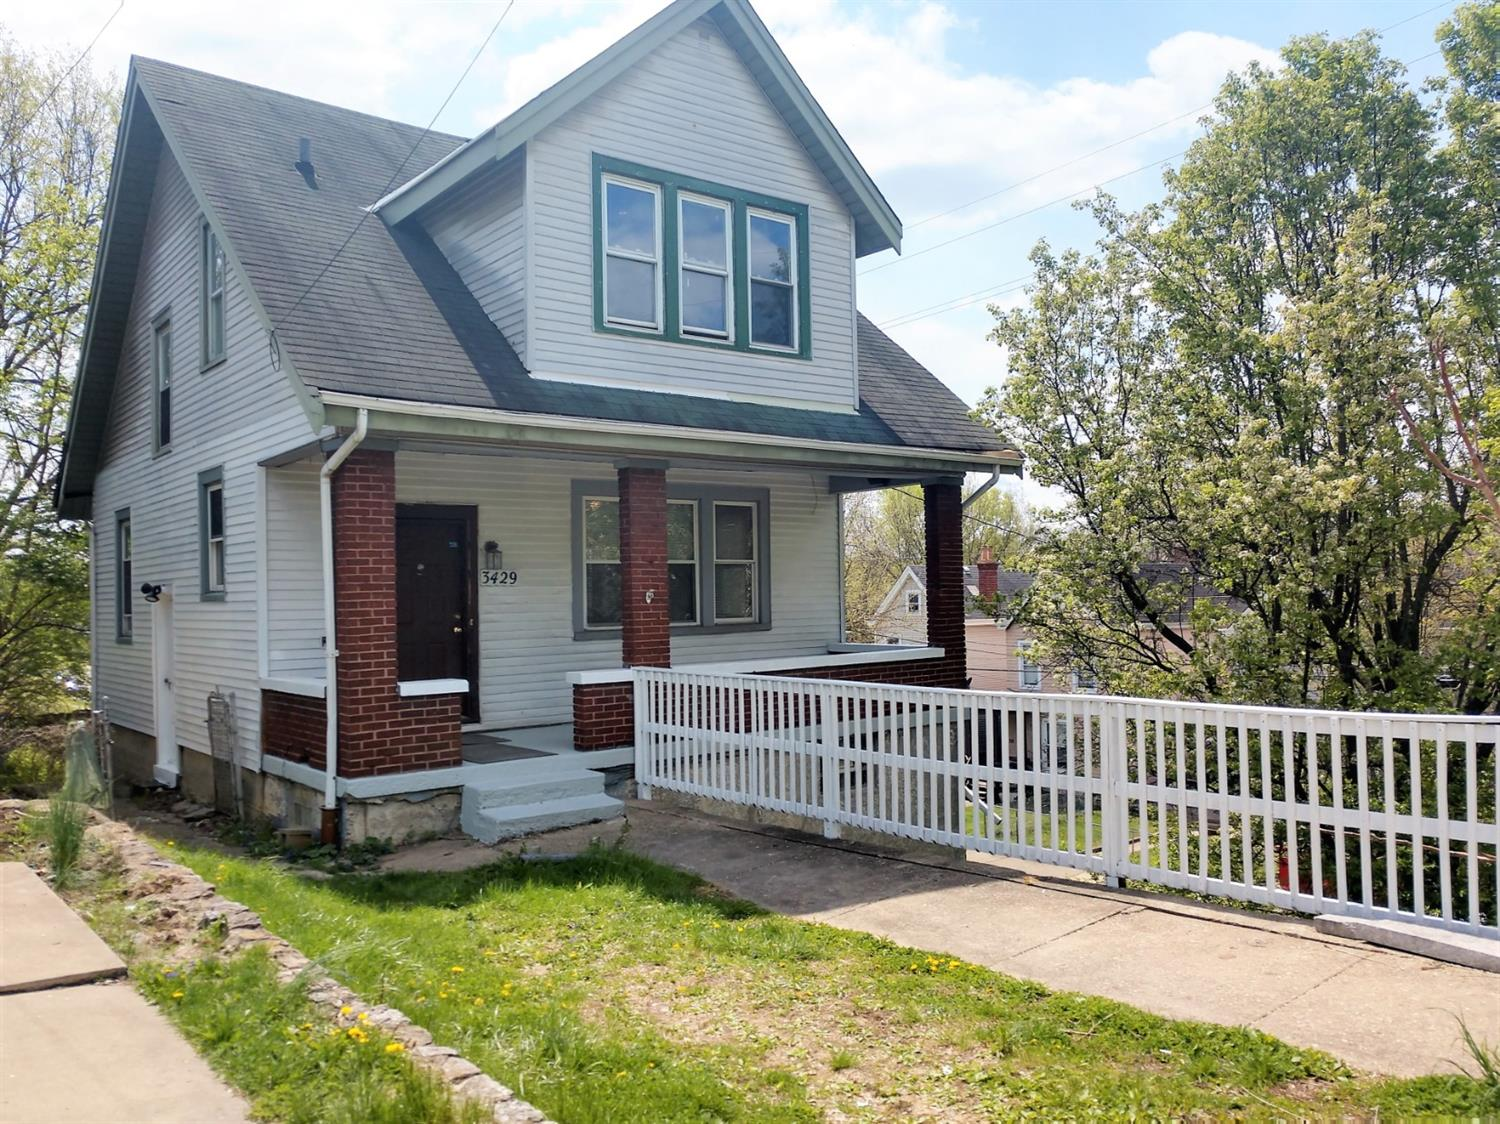 3429 W Eighth Street Price Hill, OH